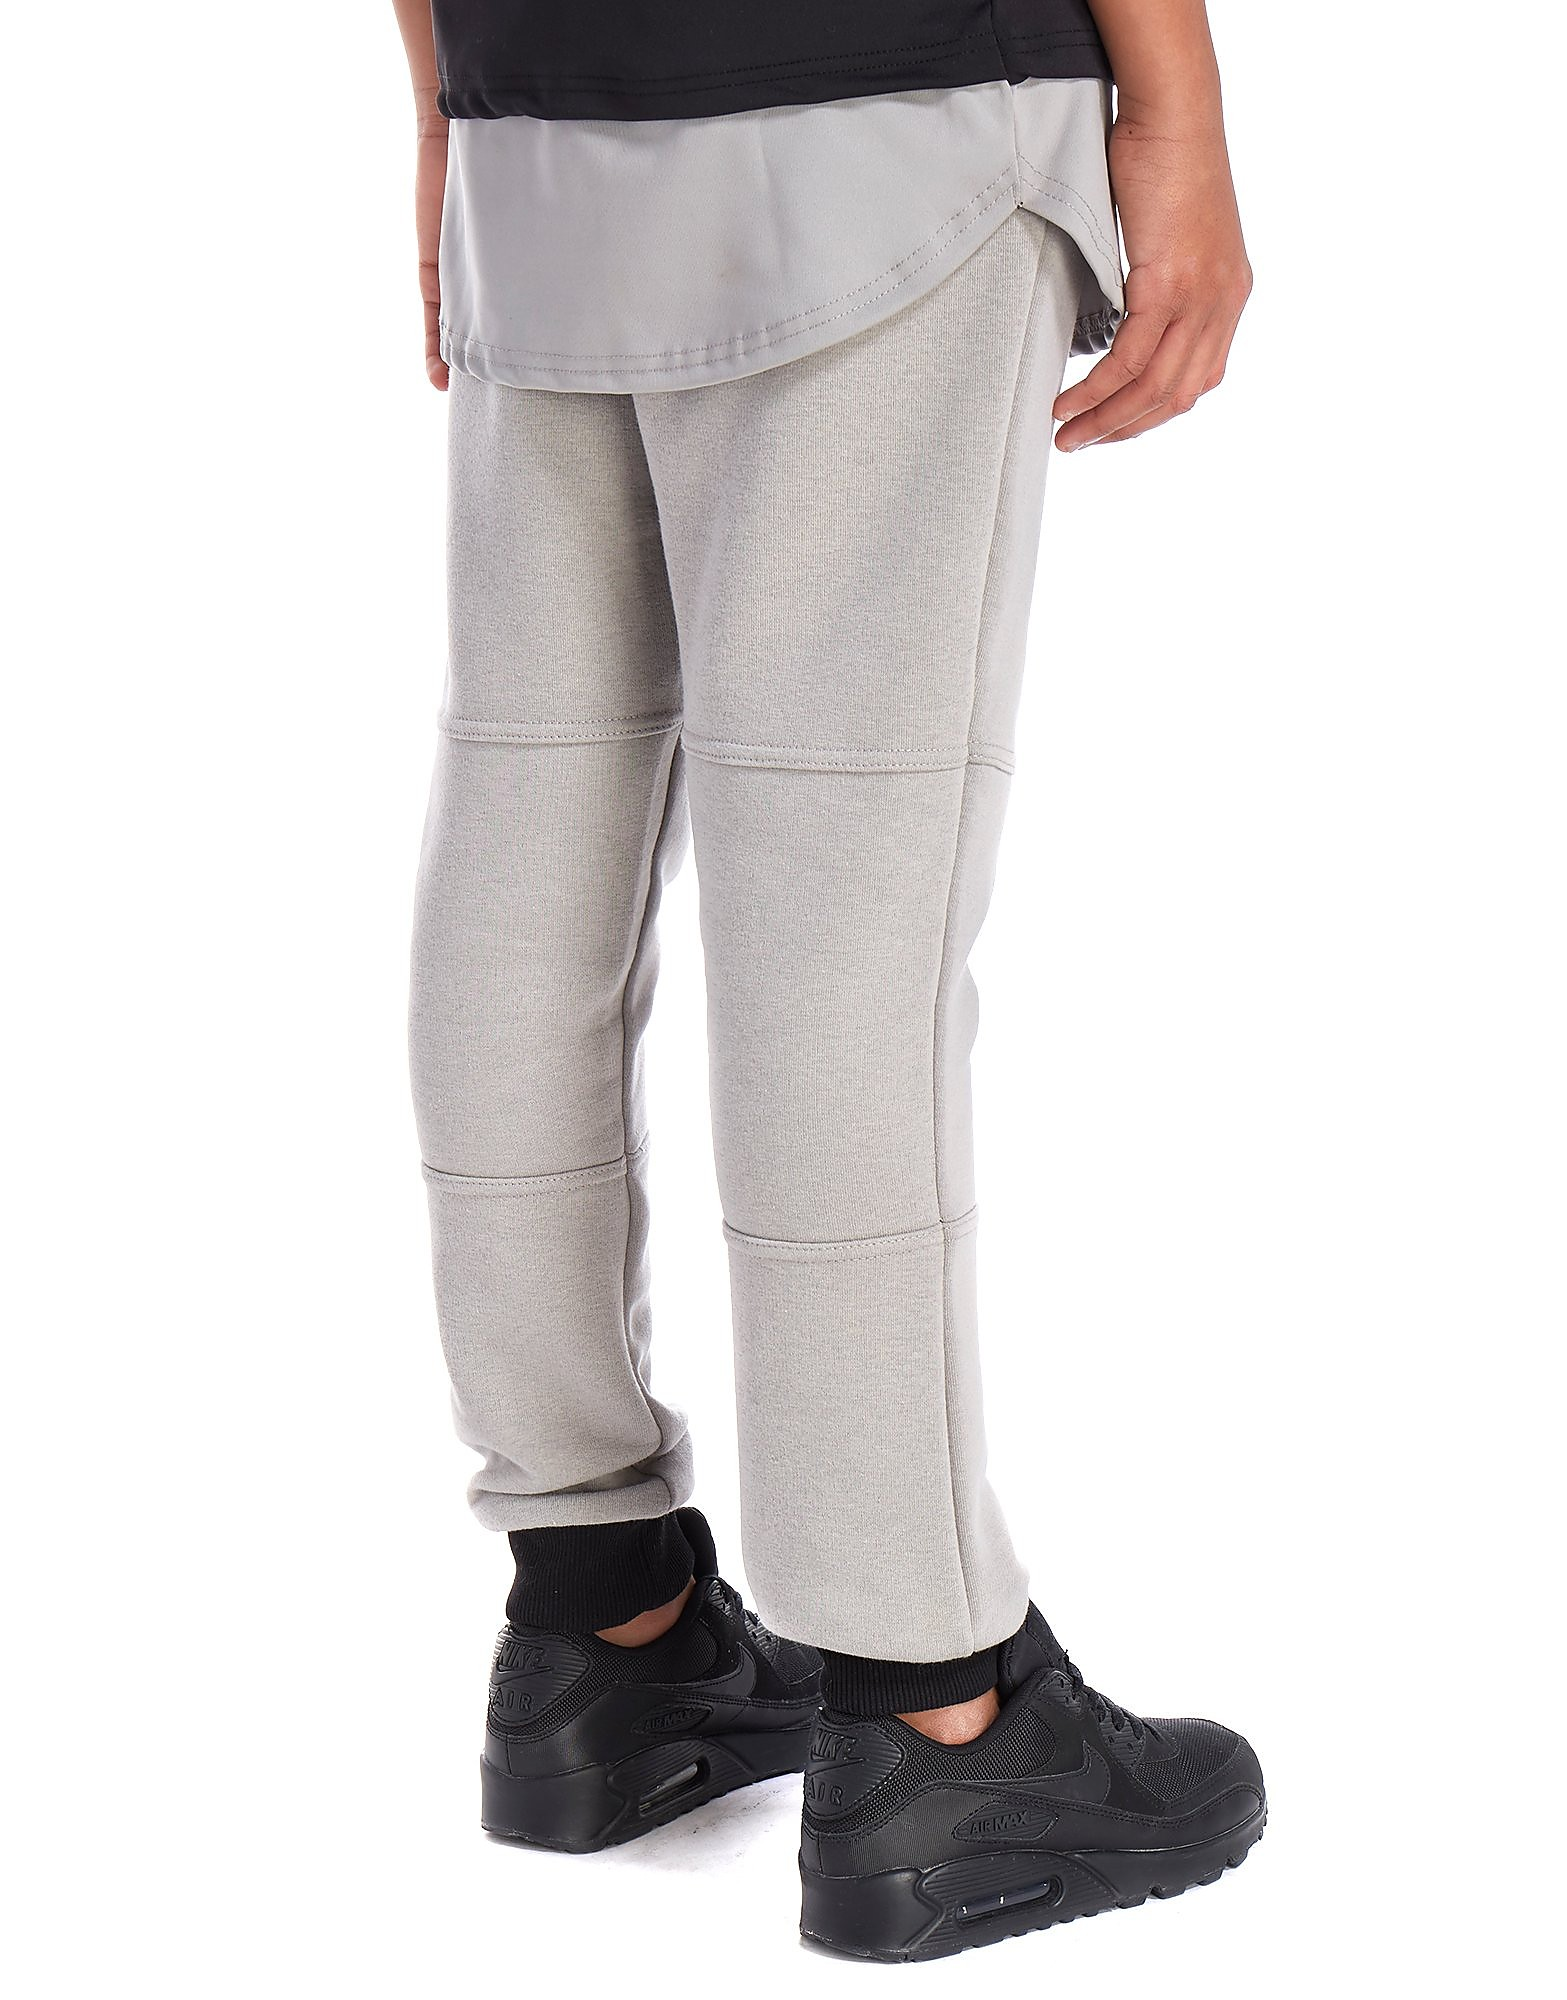 Sonneti Desmond Sweatpants Junior